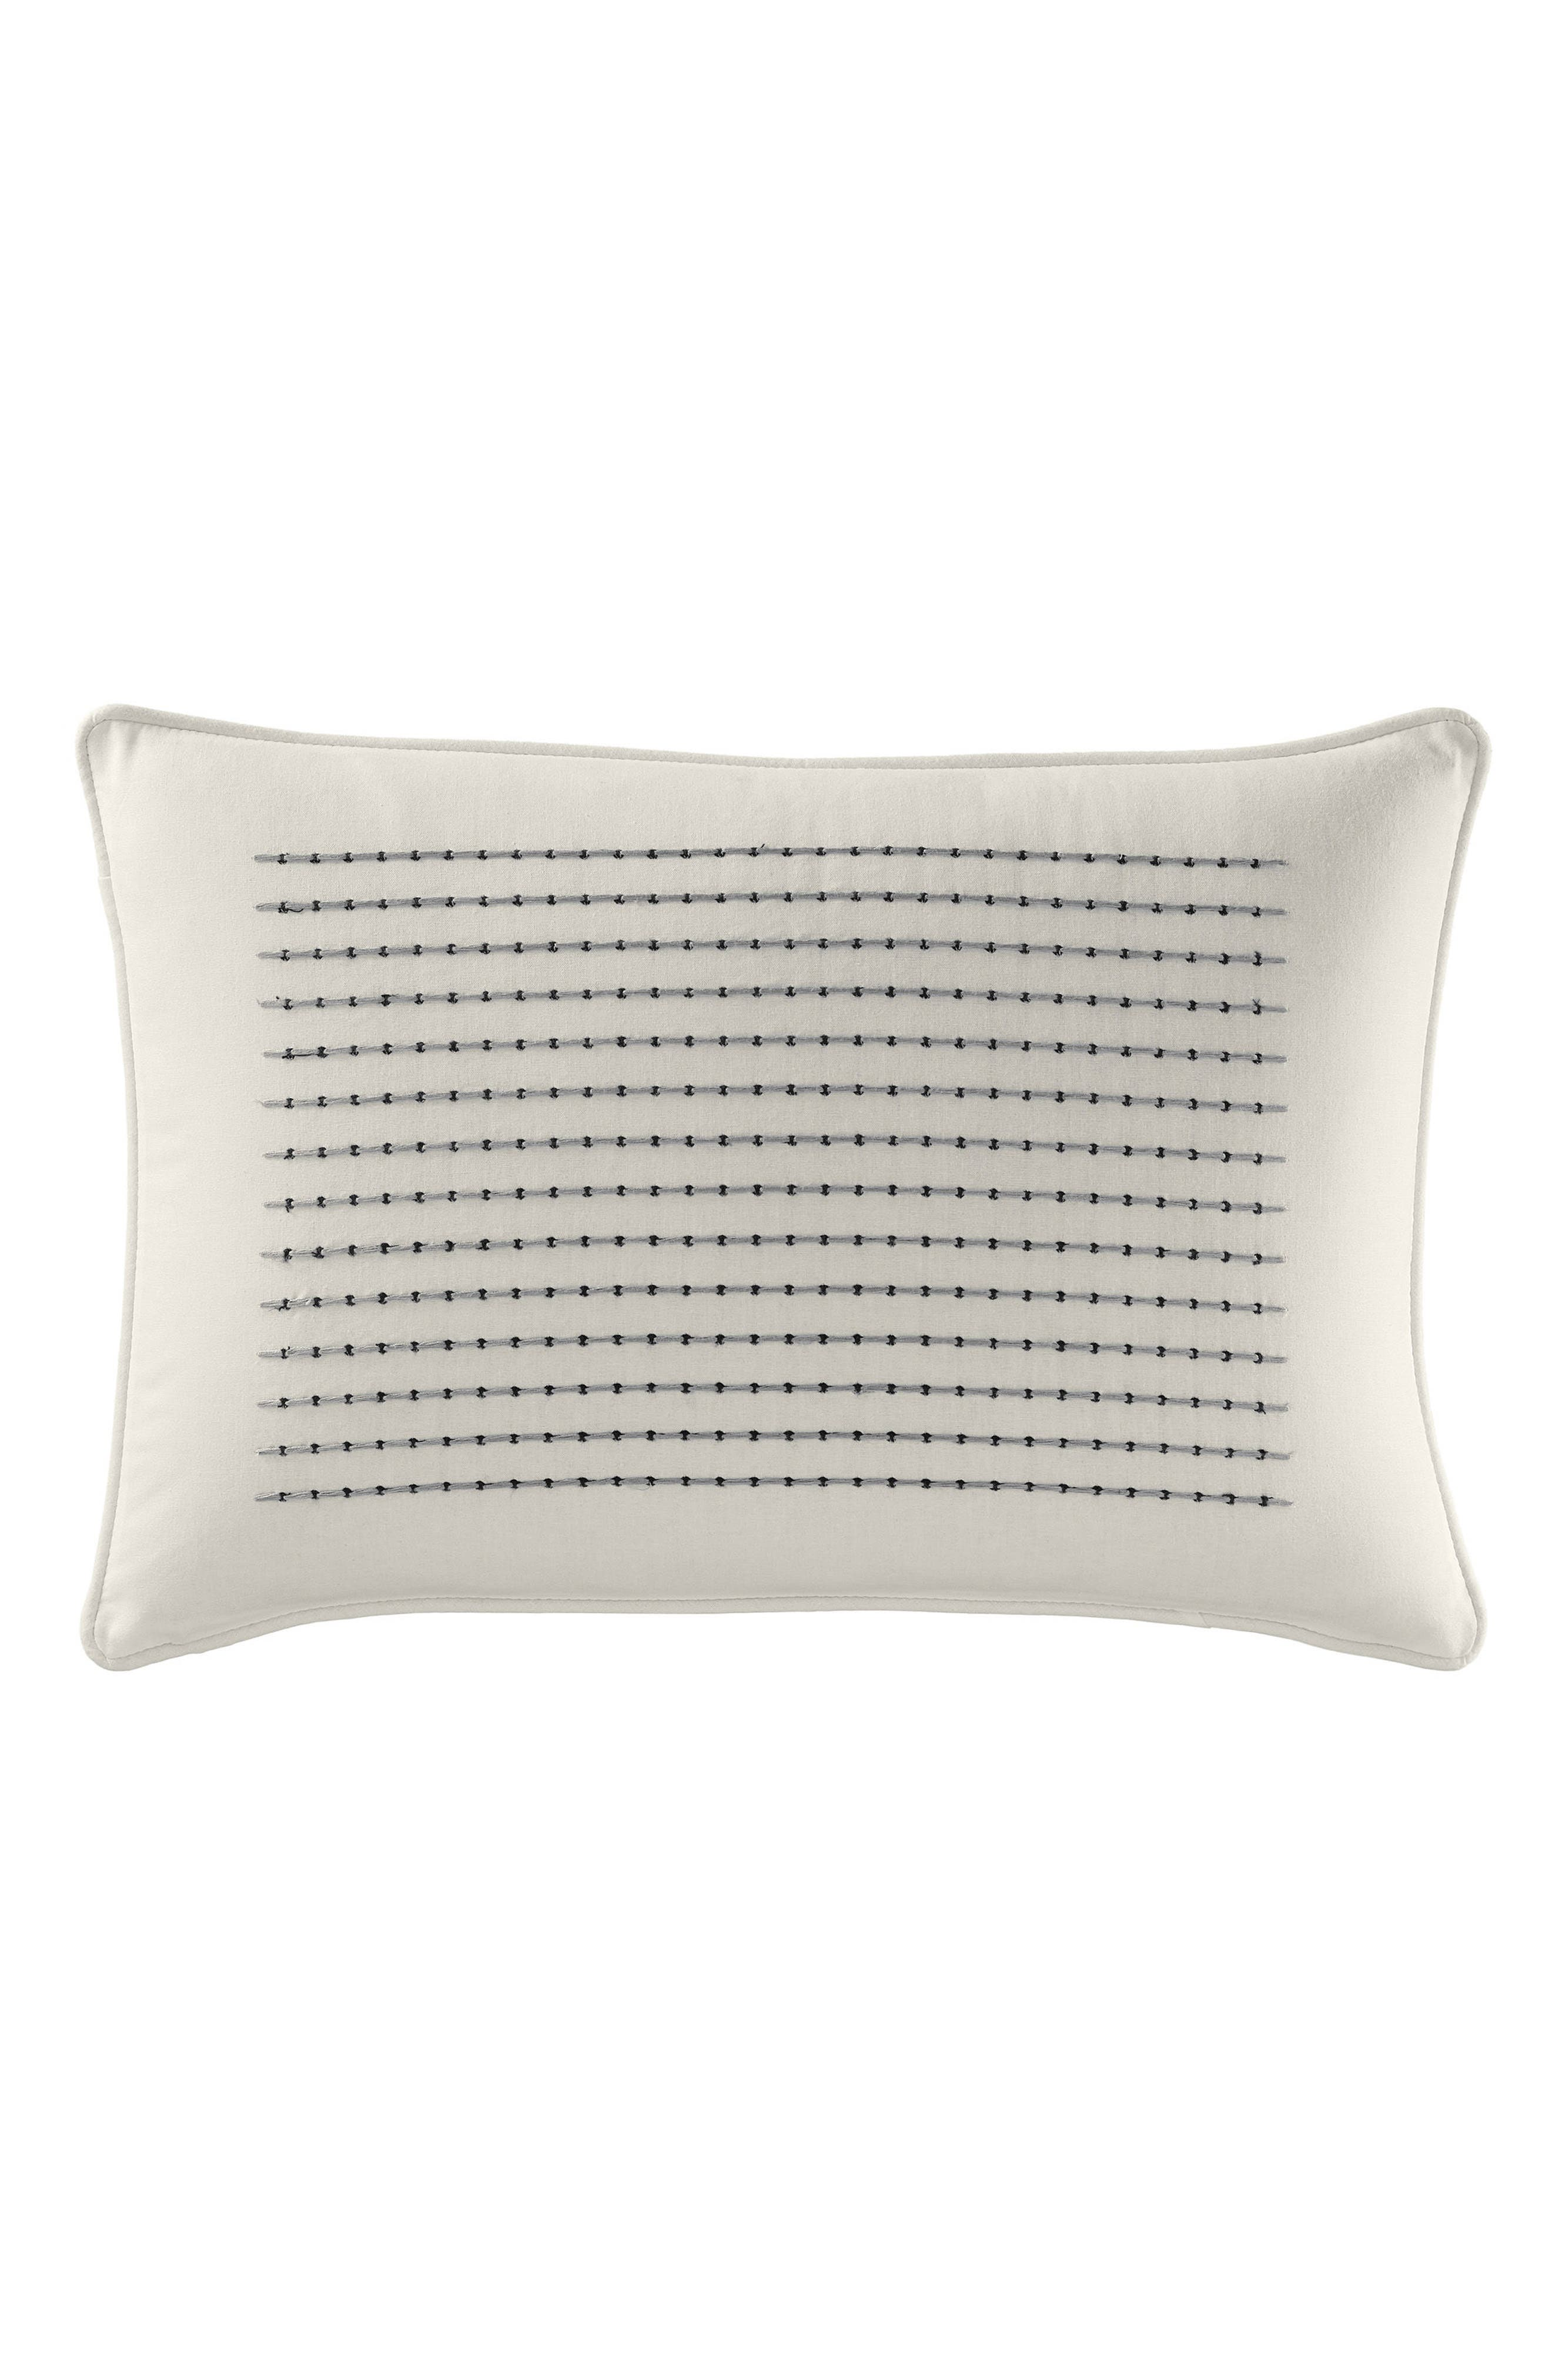 Caldwell Embroidered Pillow,                             Alternate thumbnail 2, color,                             100